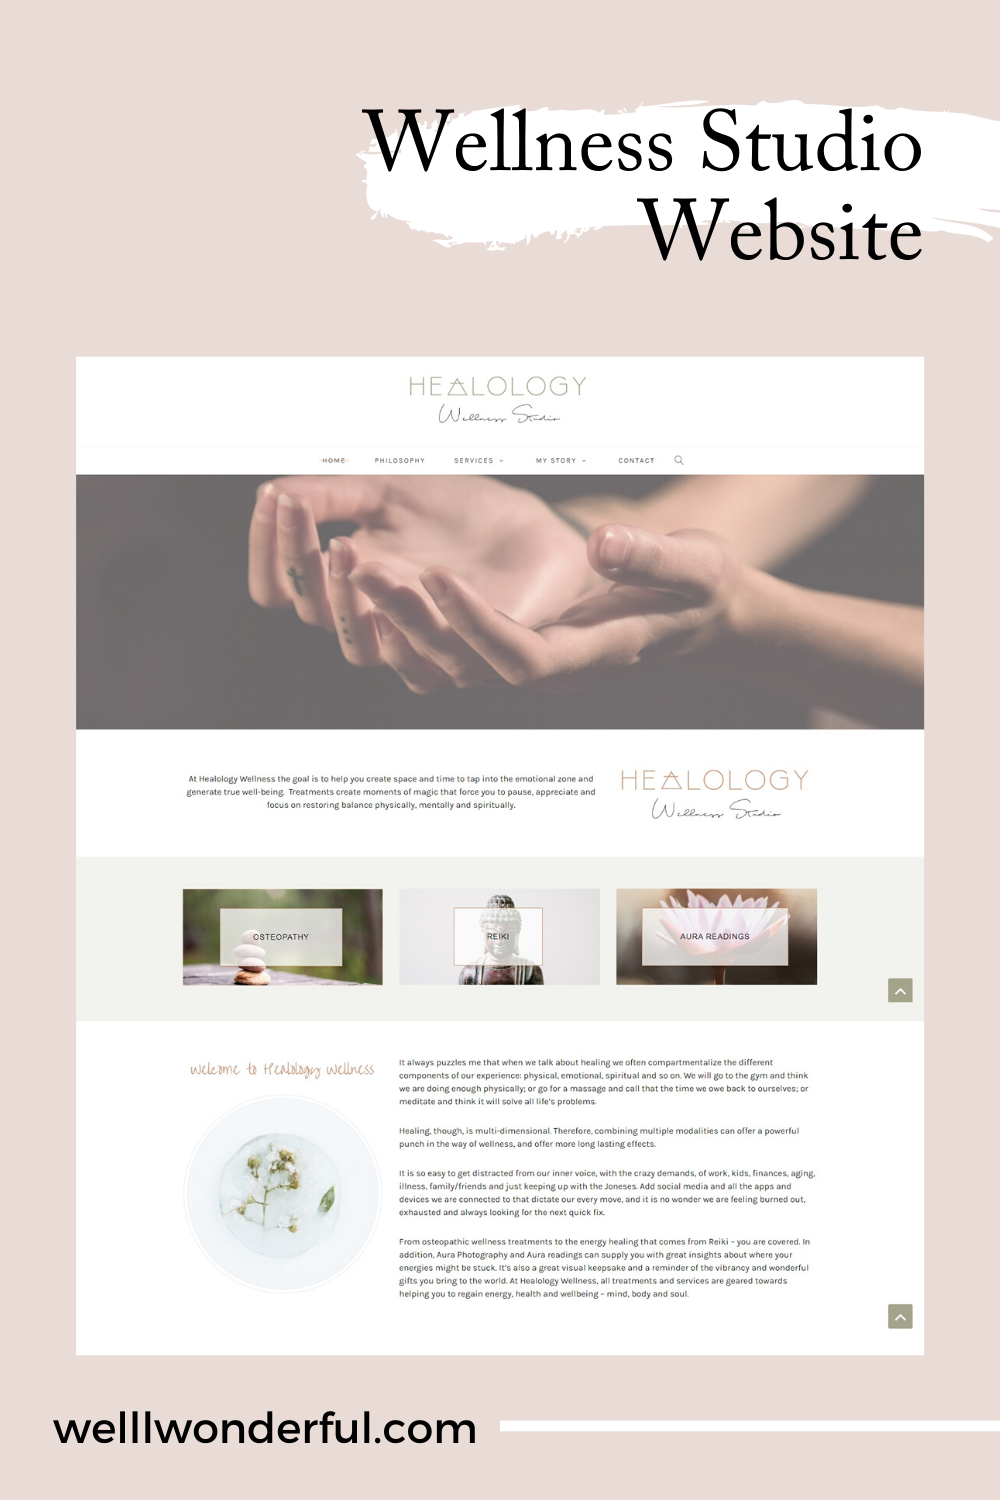 Wellness Studio Website In 2020 Wellness Studio Website Design Affordable Websites